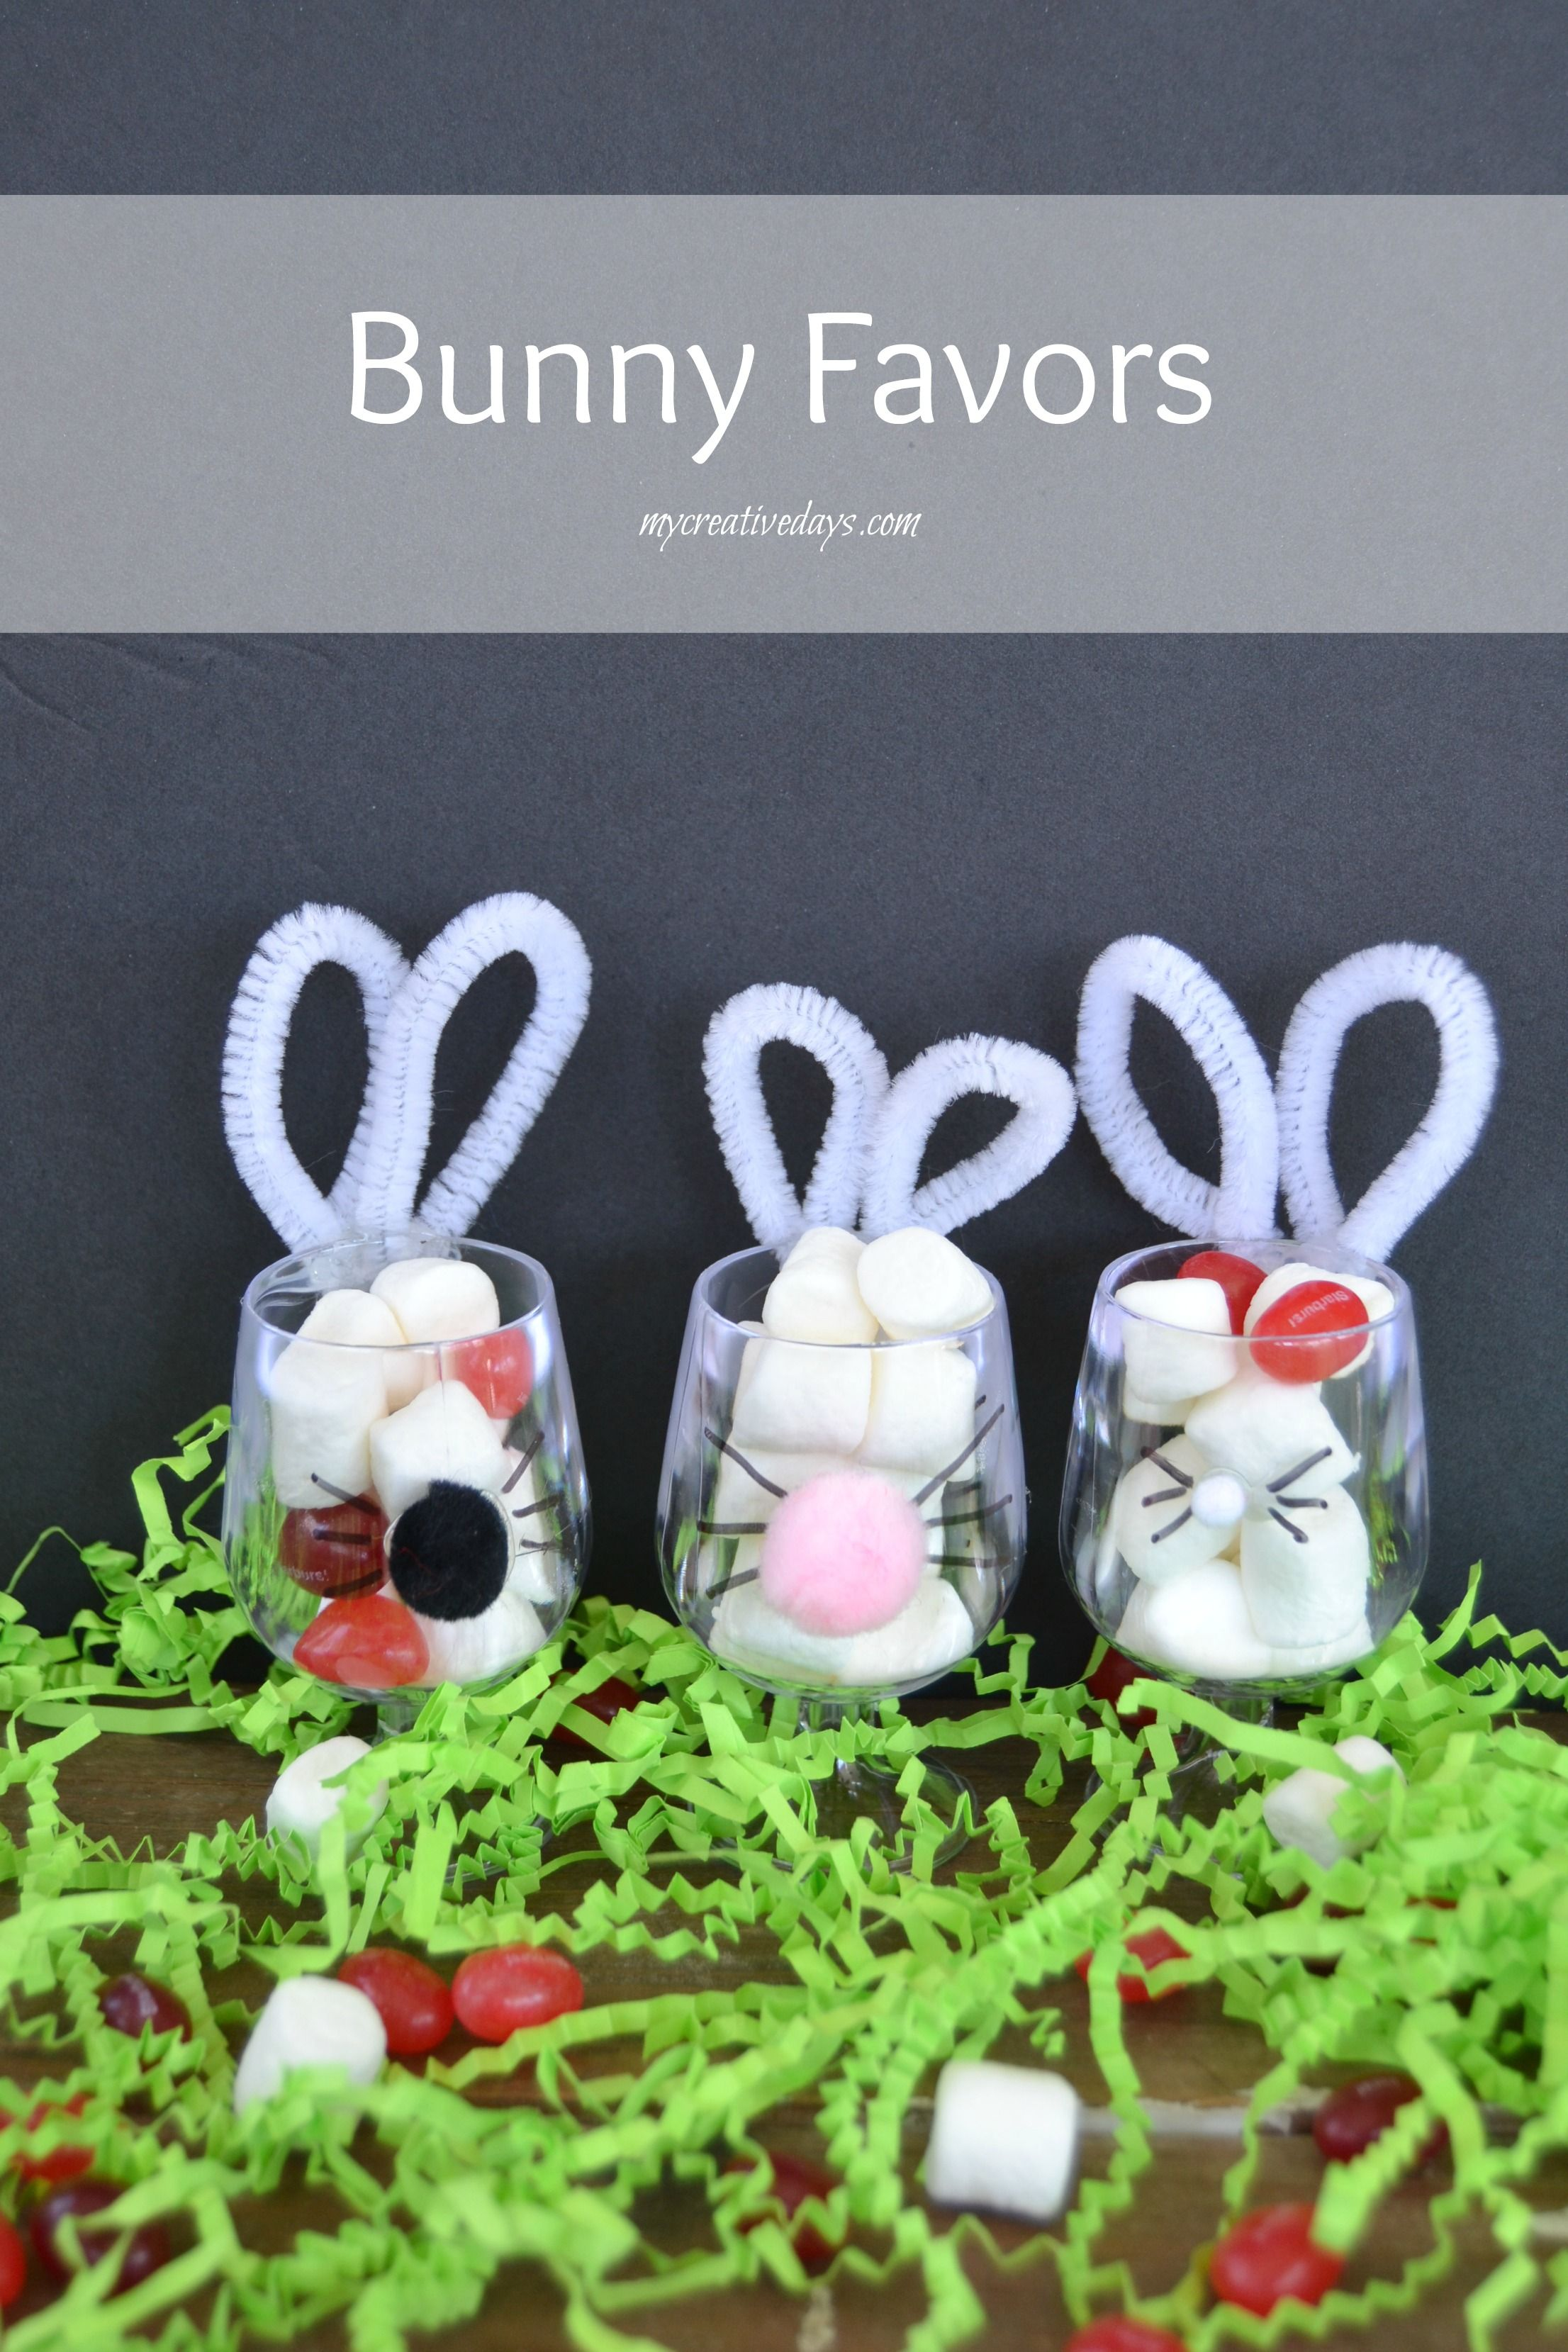 Bunny favors for easter bunny favors and easter bunny favors for easter negle Image collections